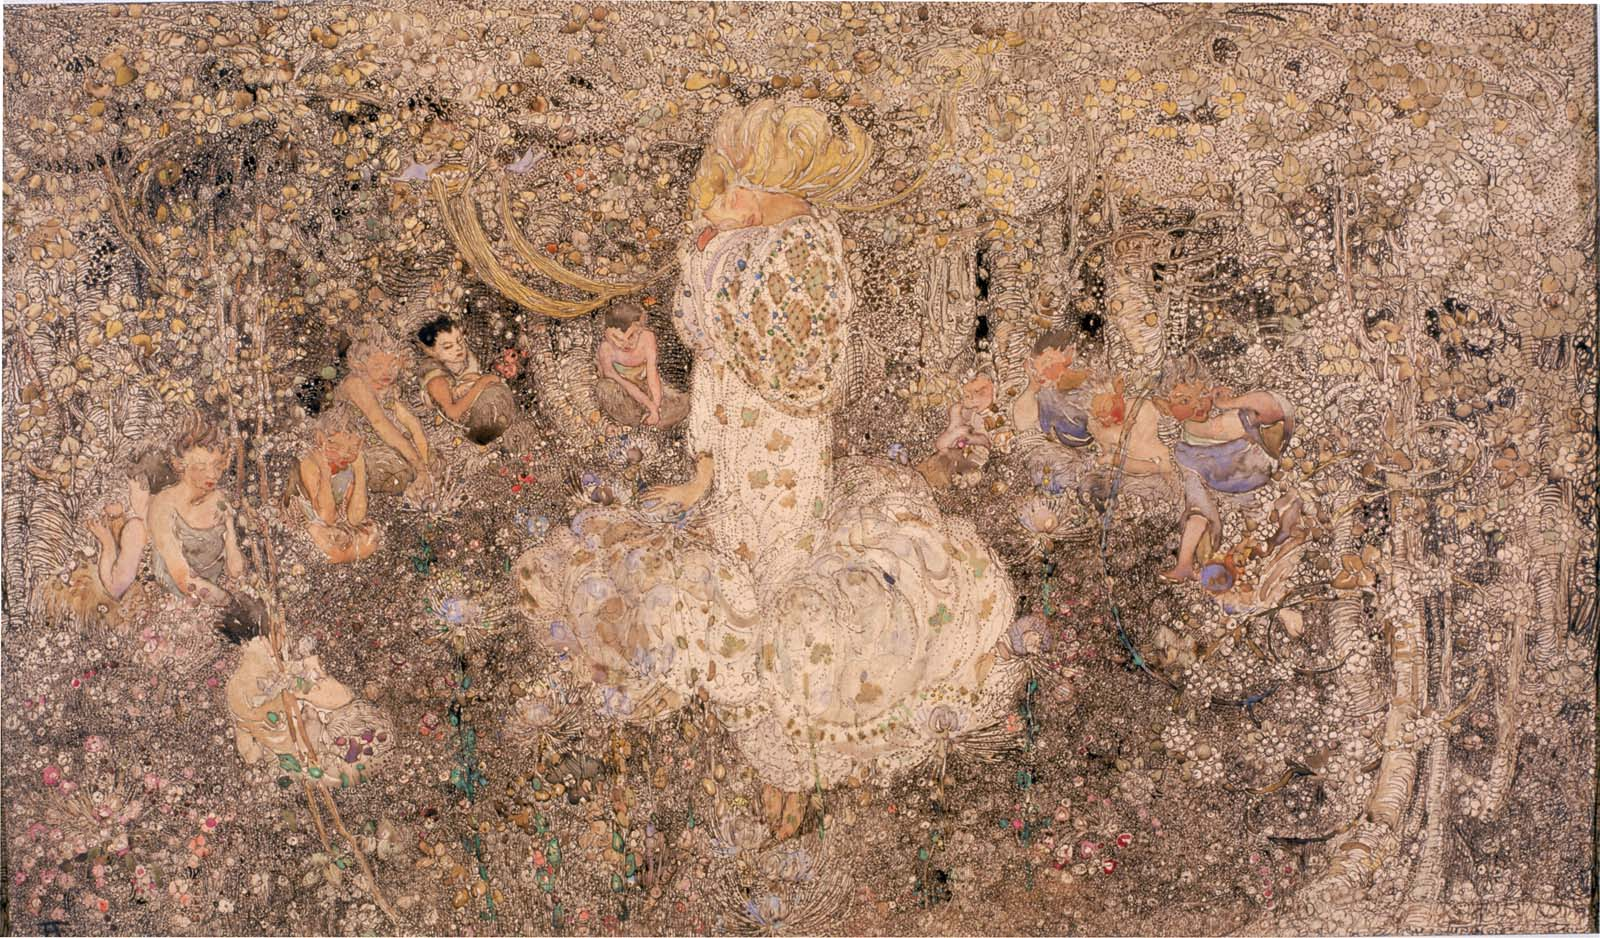 a golden painting depicting a sleeping woman inside a phallic flower in a forest clearing populated by elves